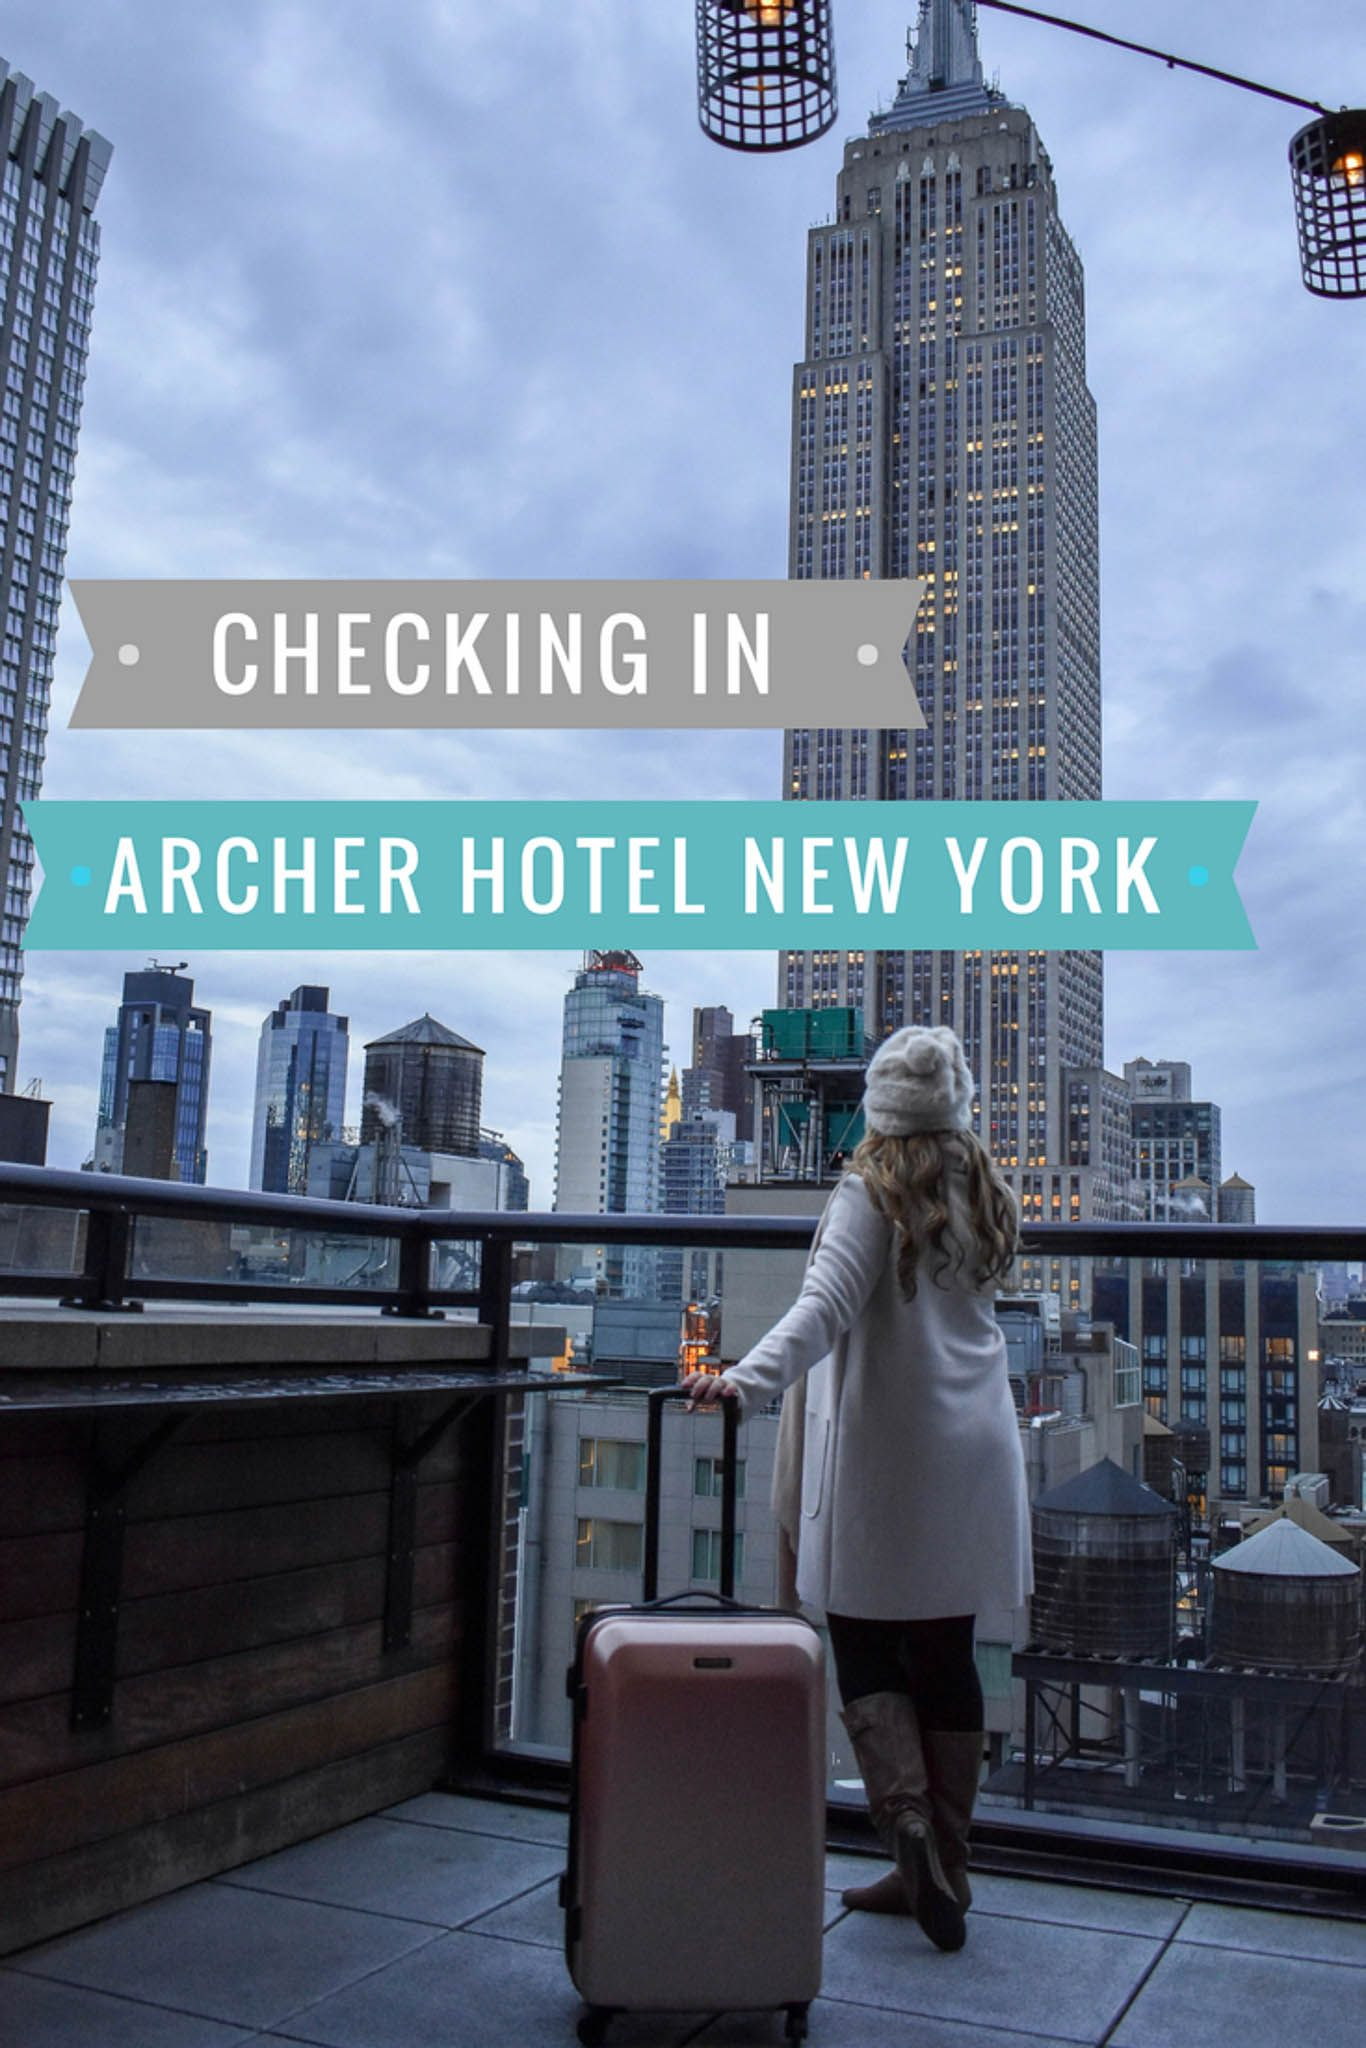 Usa Online Voucher Code New York Hotel 2020